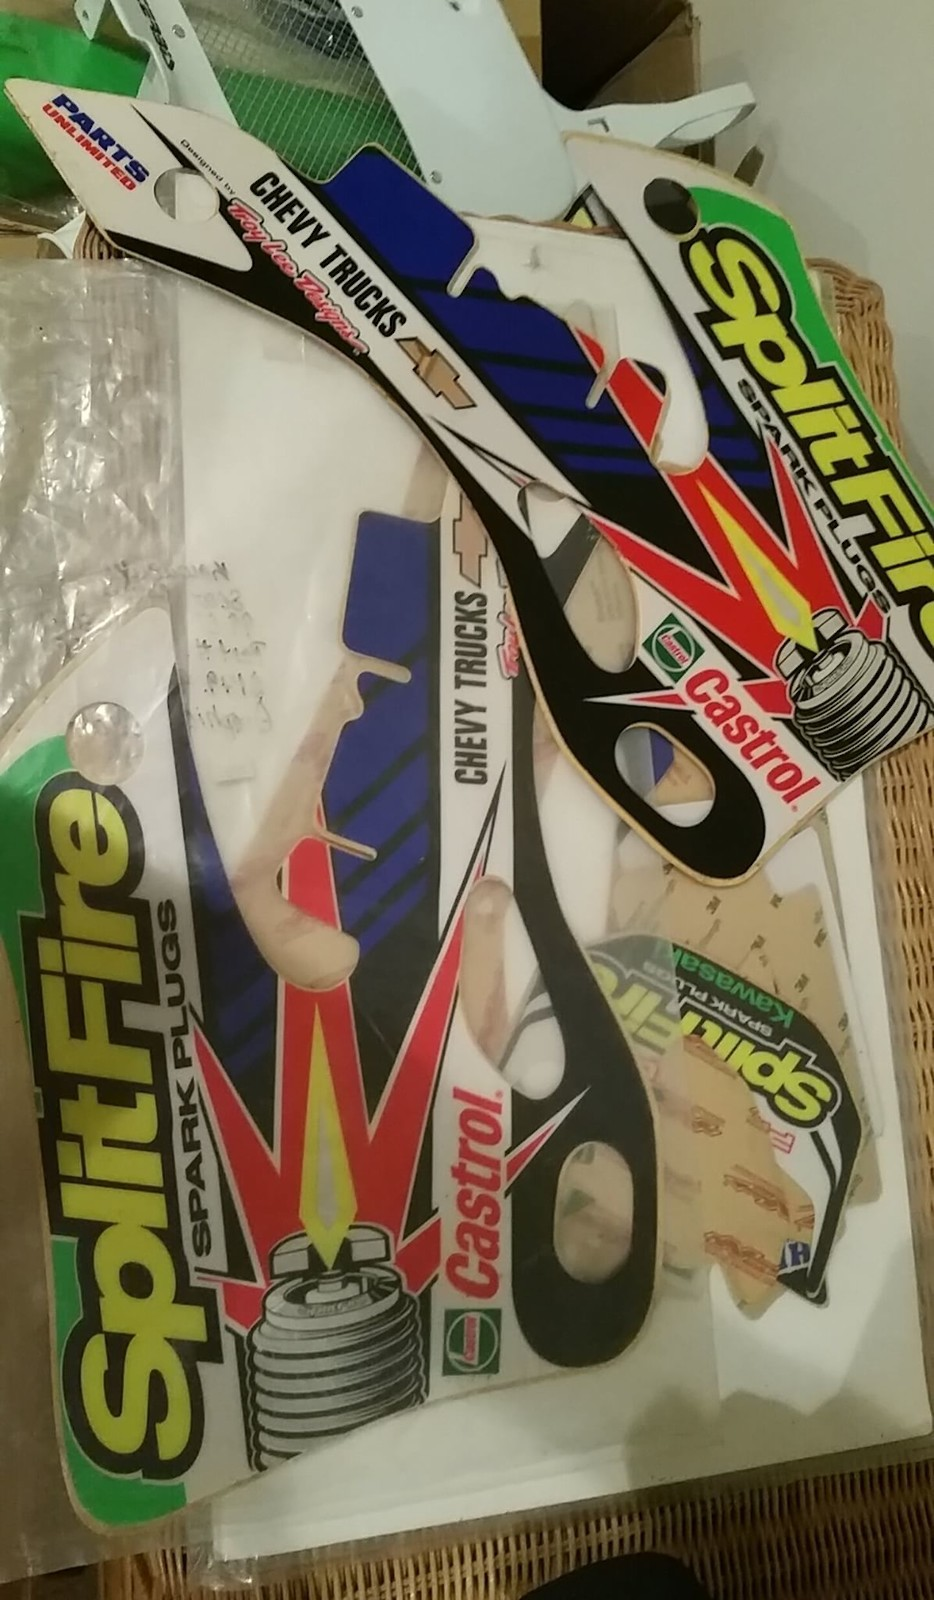 2000 kx125 nstyle splitfire graphics kit and seat cover new